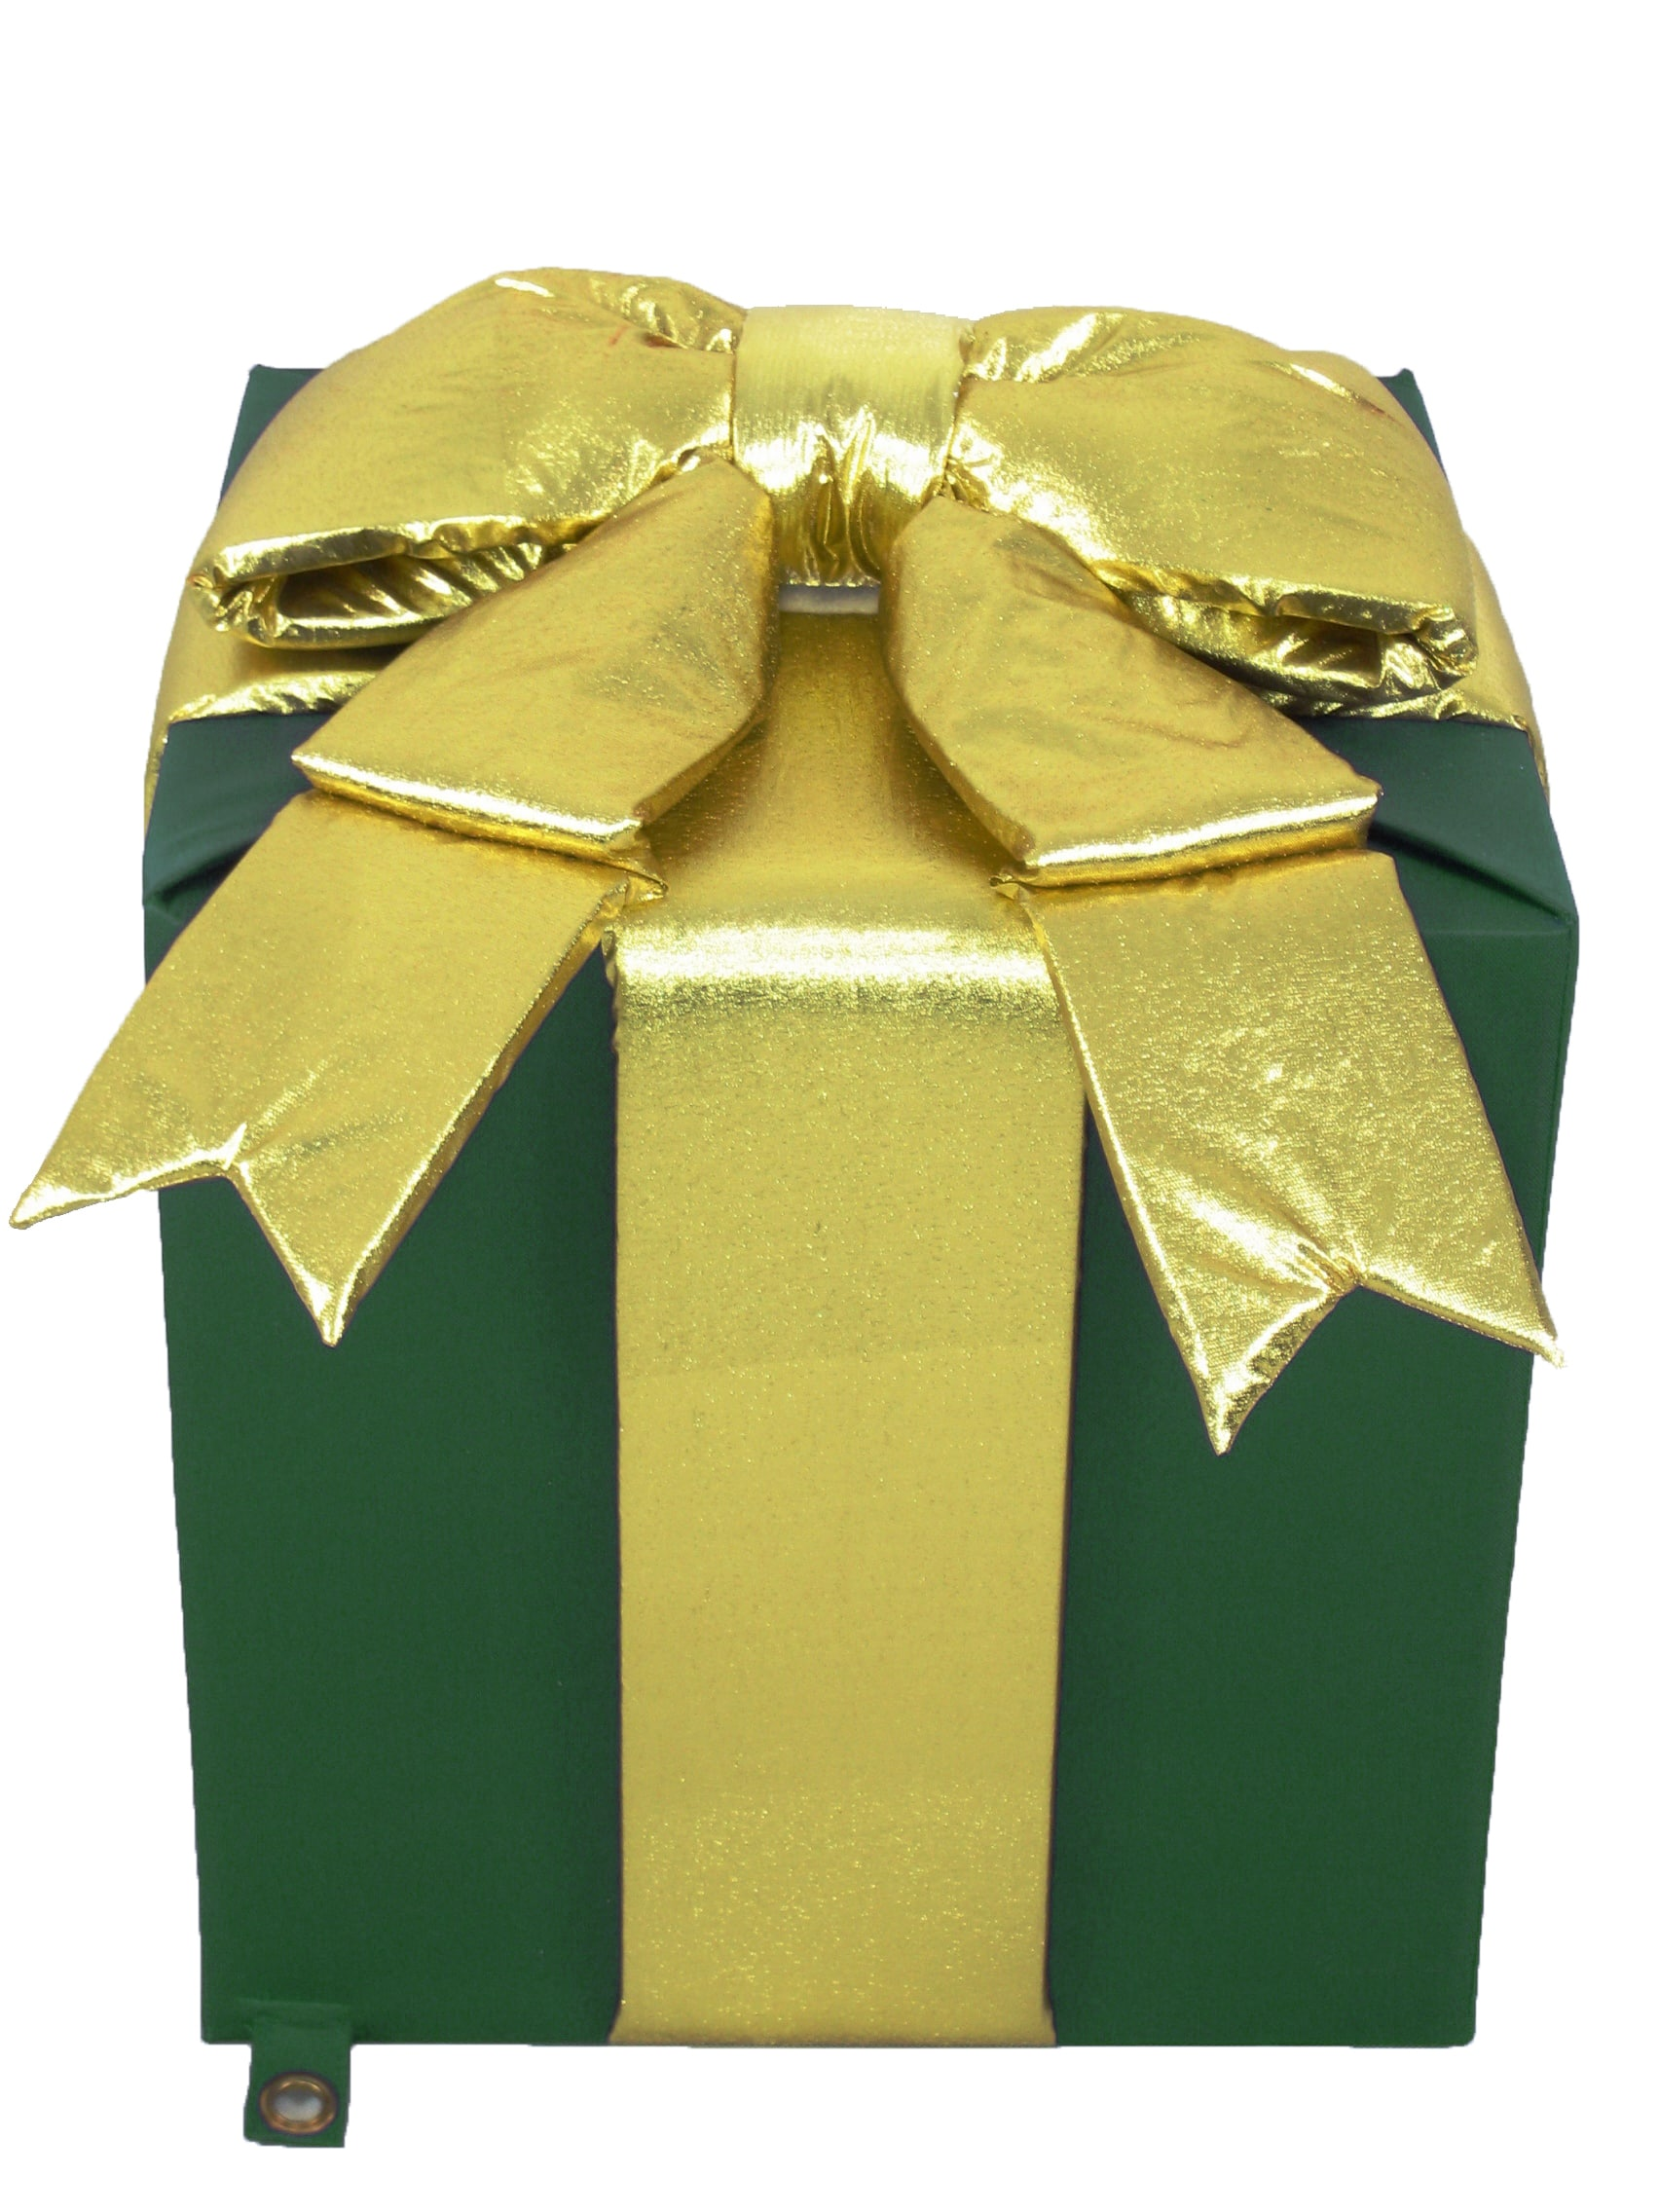 Christmas at Winterland WL-GIFT-18-GR Green / Gold Gift Boxes 18 Inch Fabric Giant Green Gift Box with Gold Bow Indoor / Outdoor WL-GIFT-18-GR